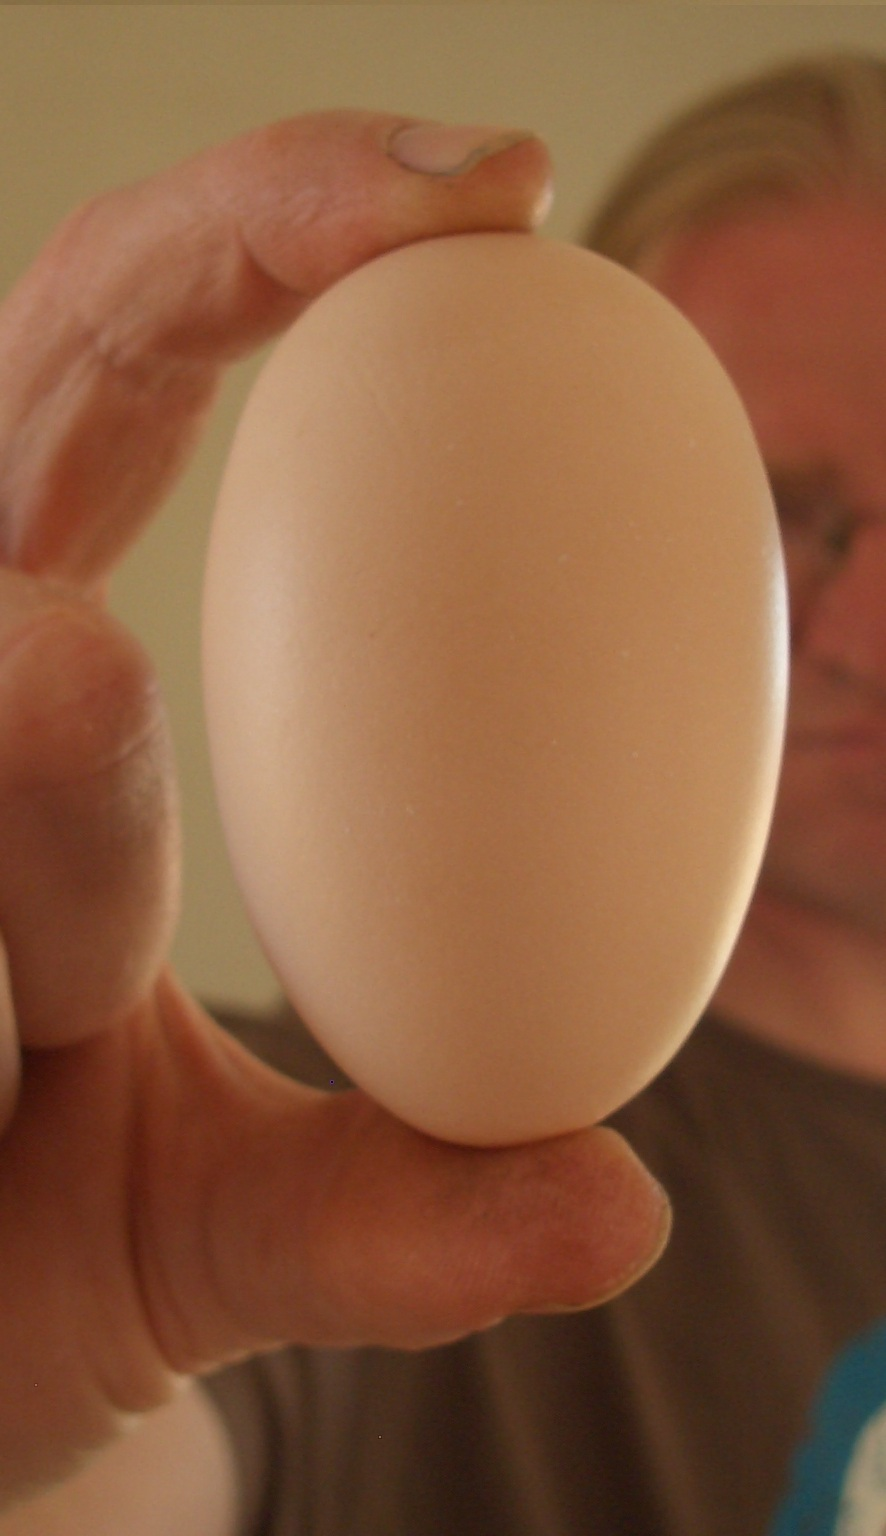 Photo of egg